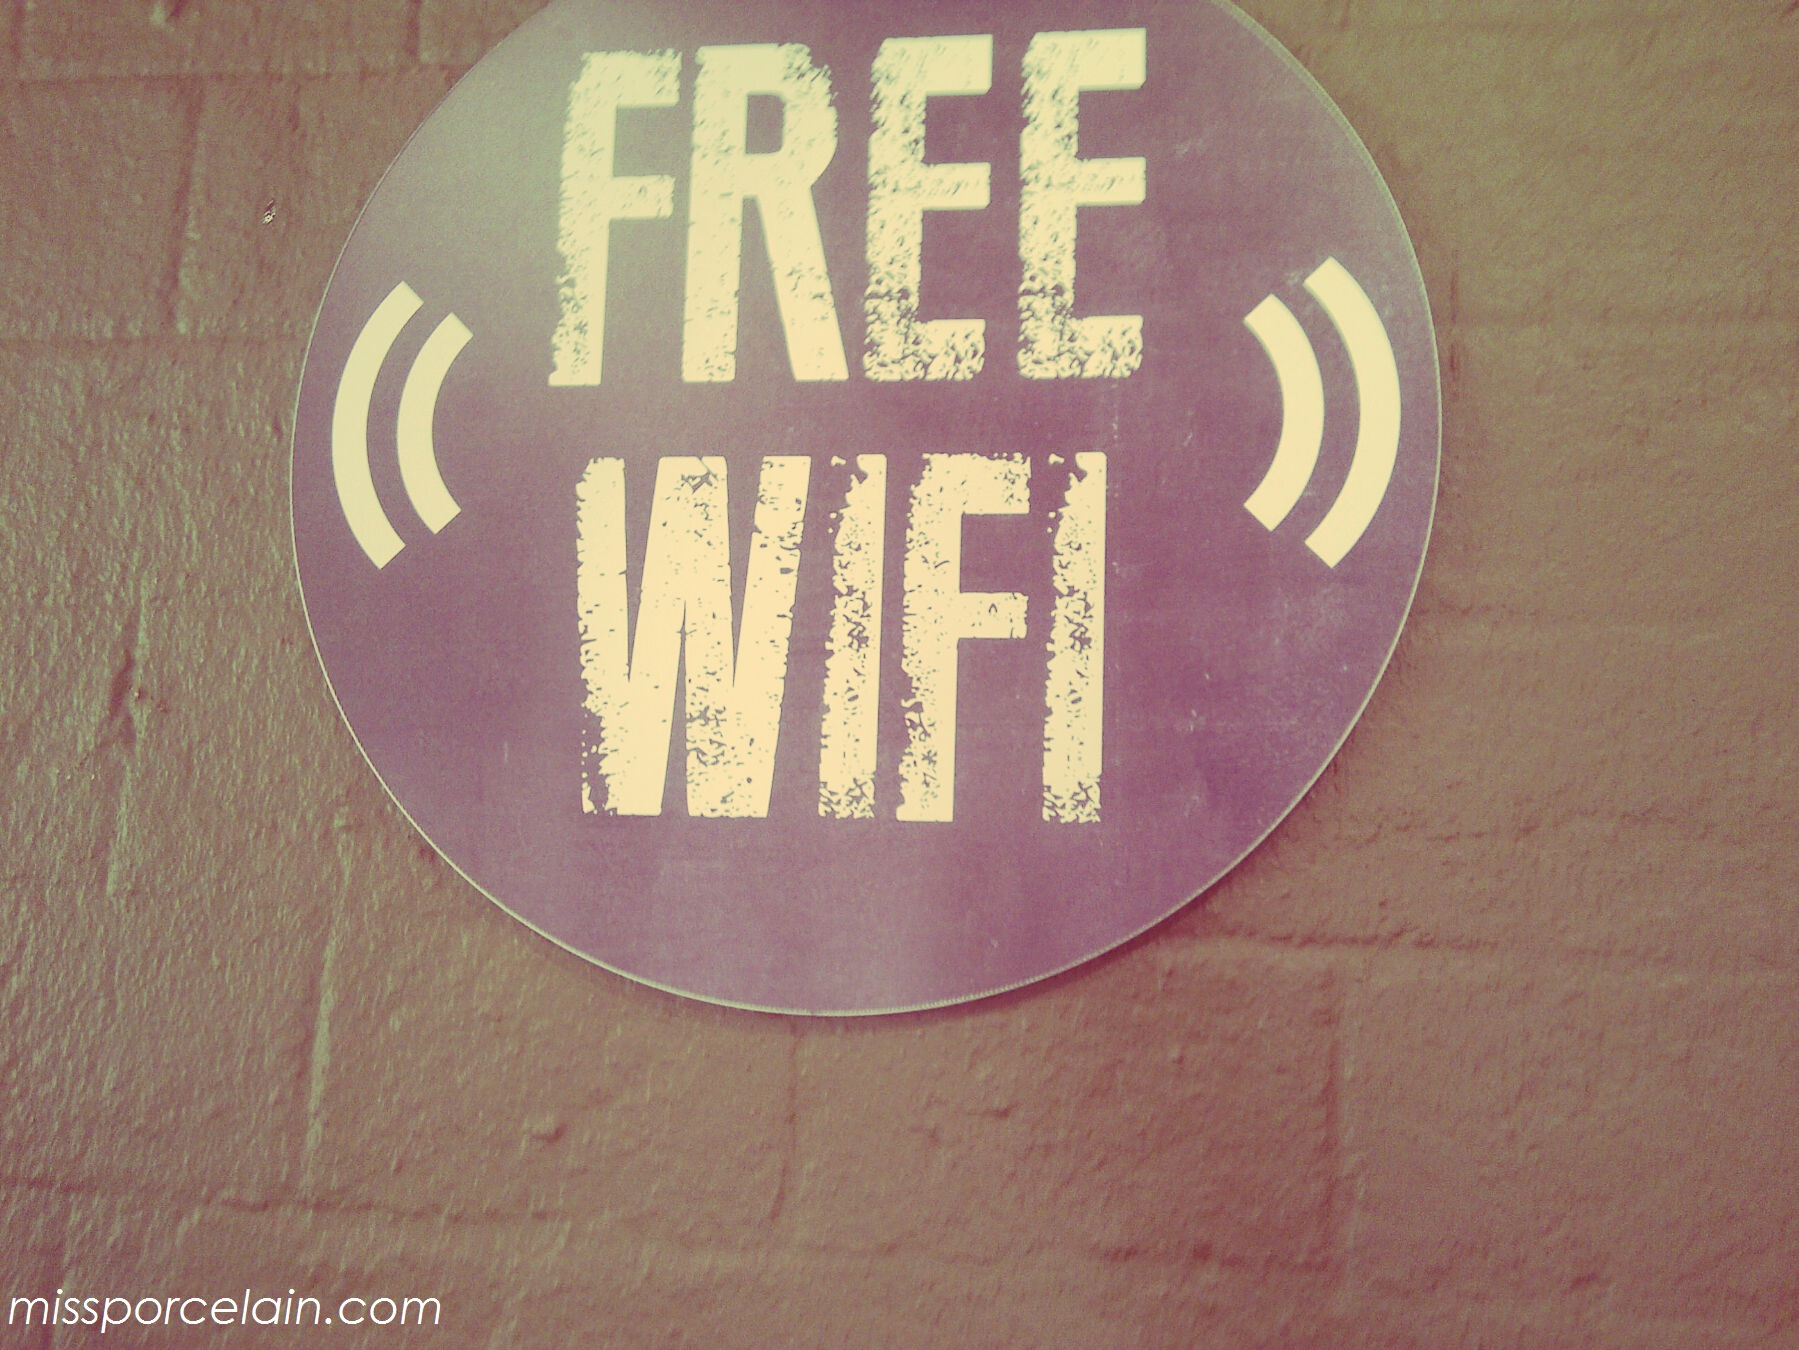 They had me at Free WiFi :)